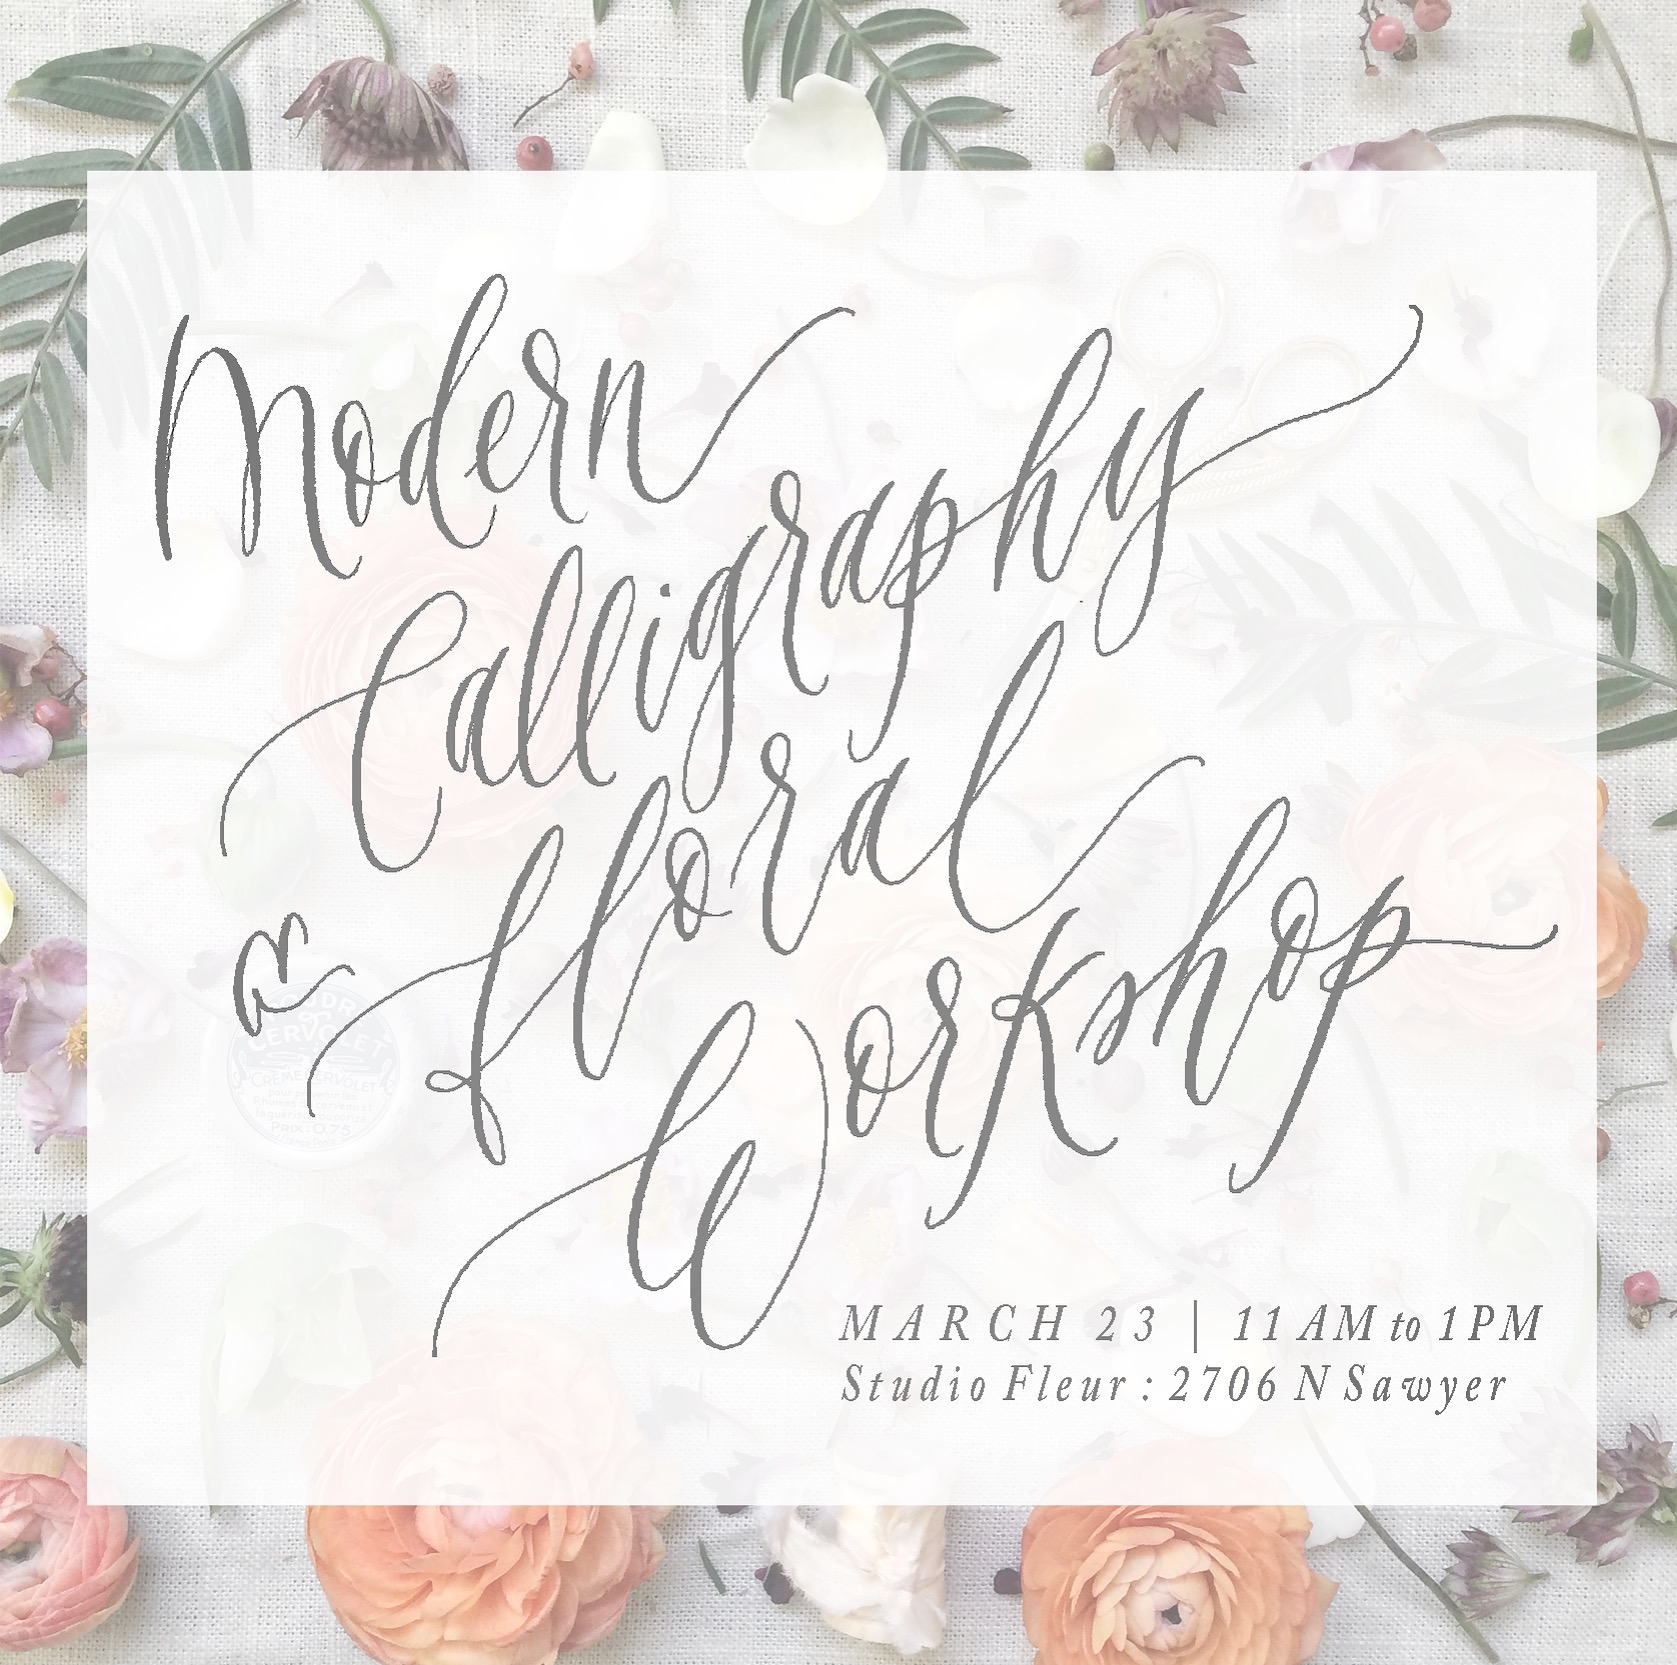 Layers of Loveliness Modern Calligraphy & Floral Design Class at Fleur